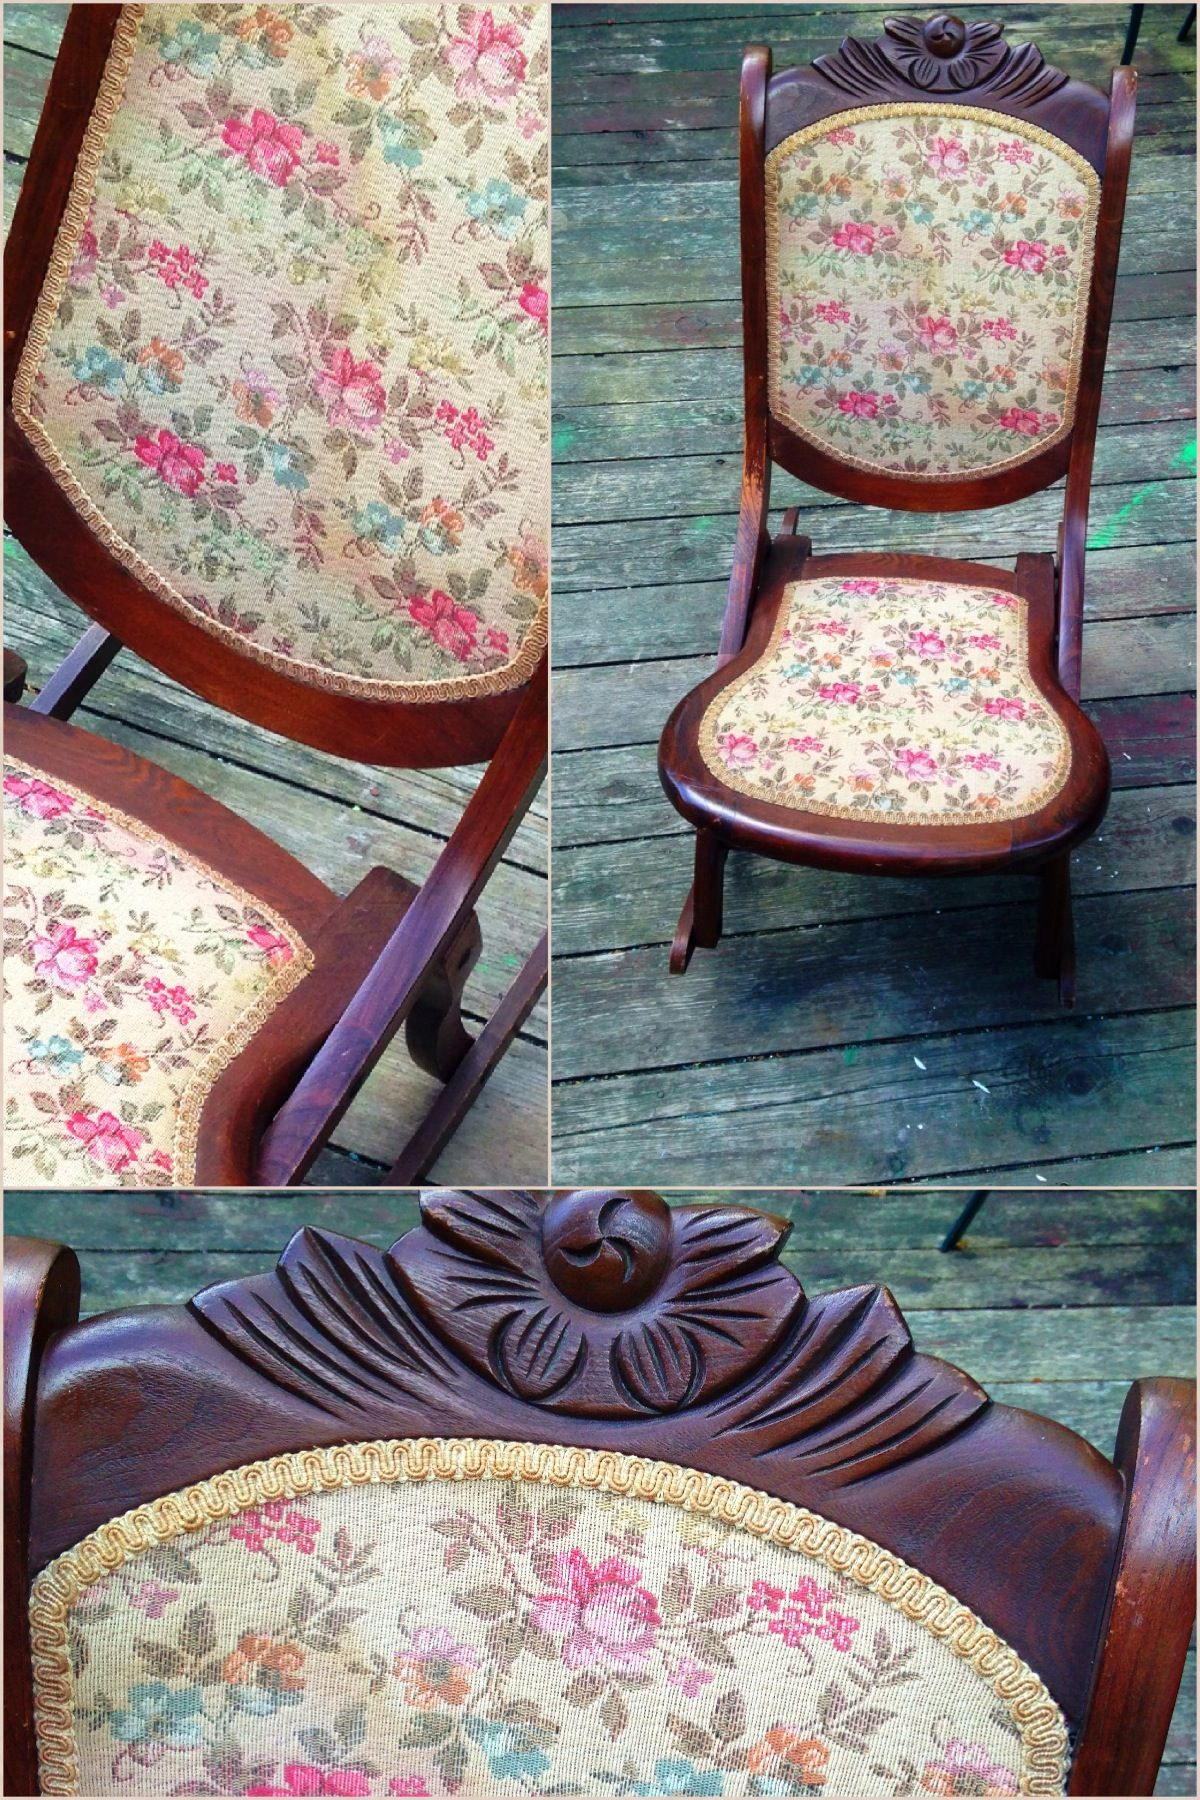 Antique sewing rocking chair, took me awhile to figure out